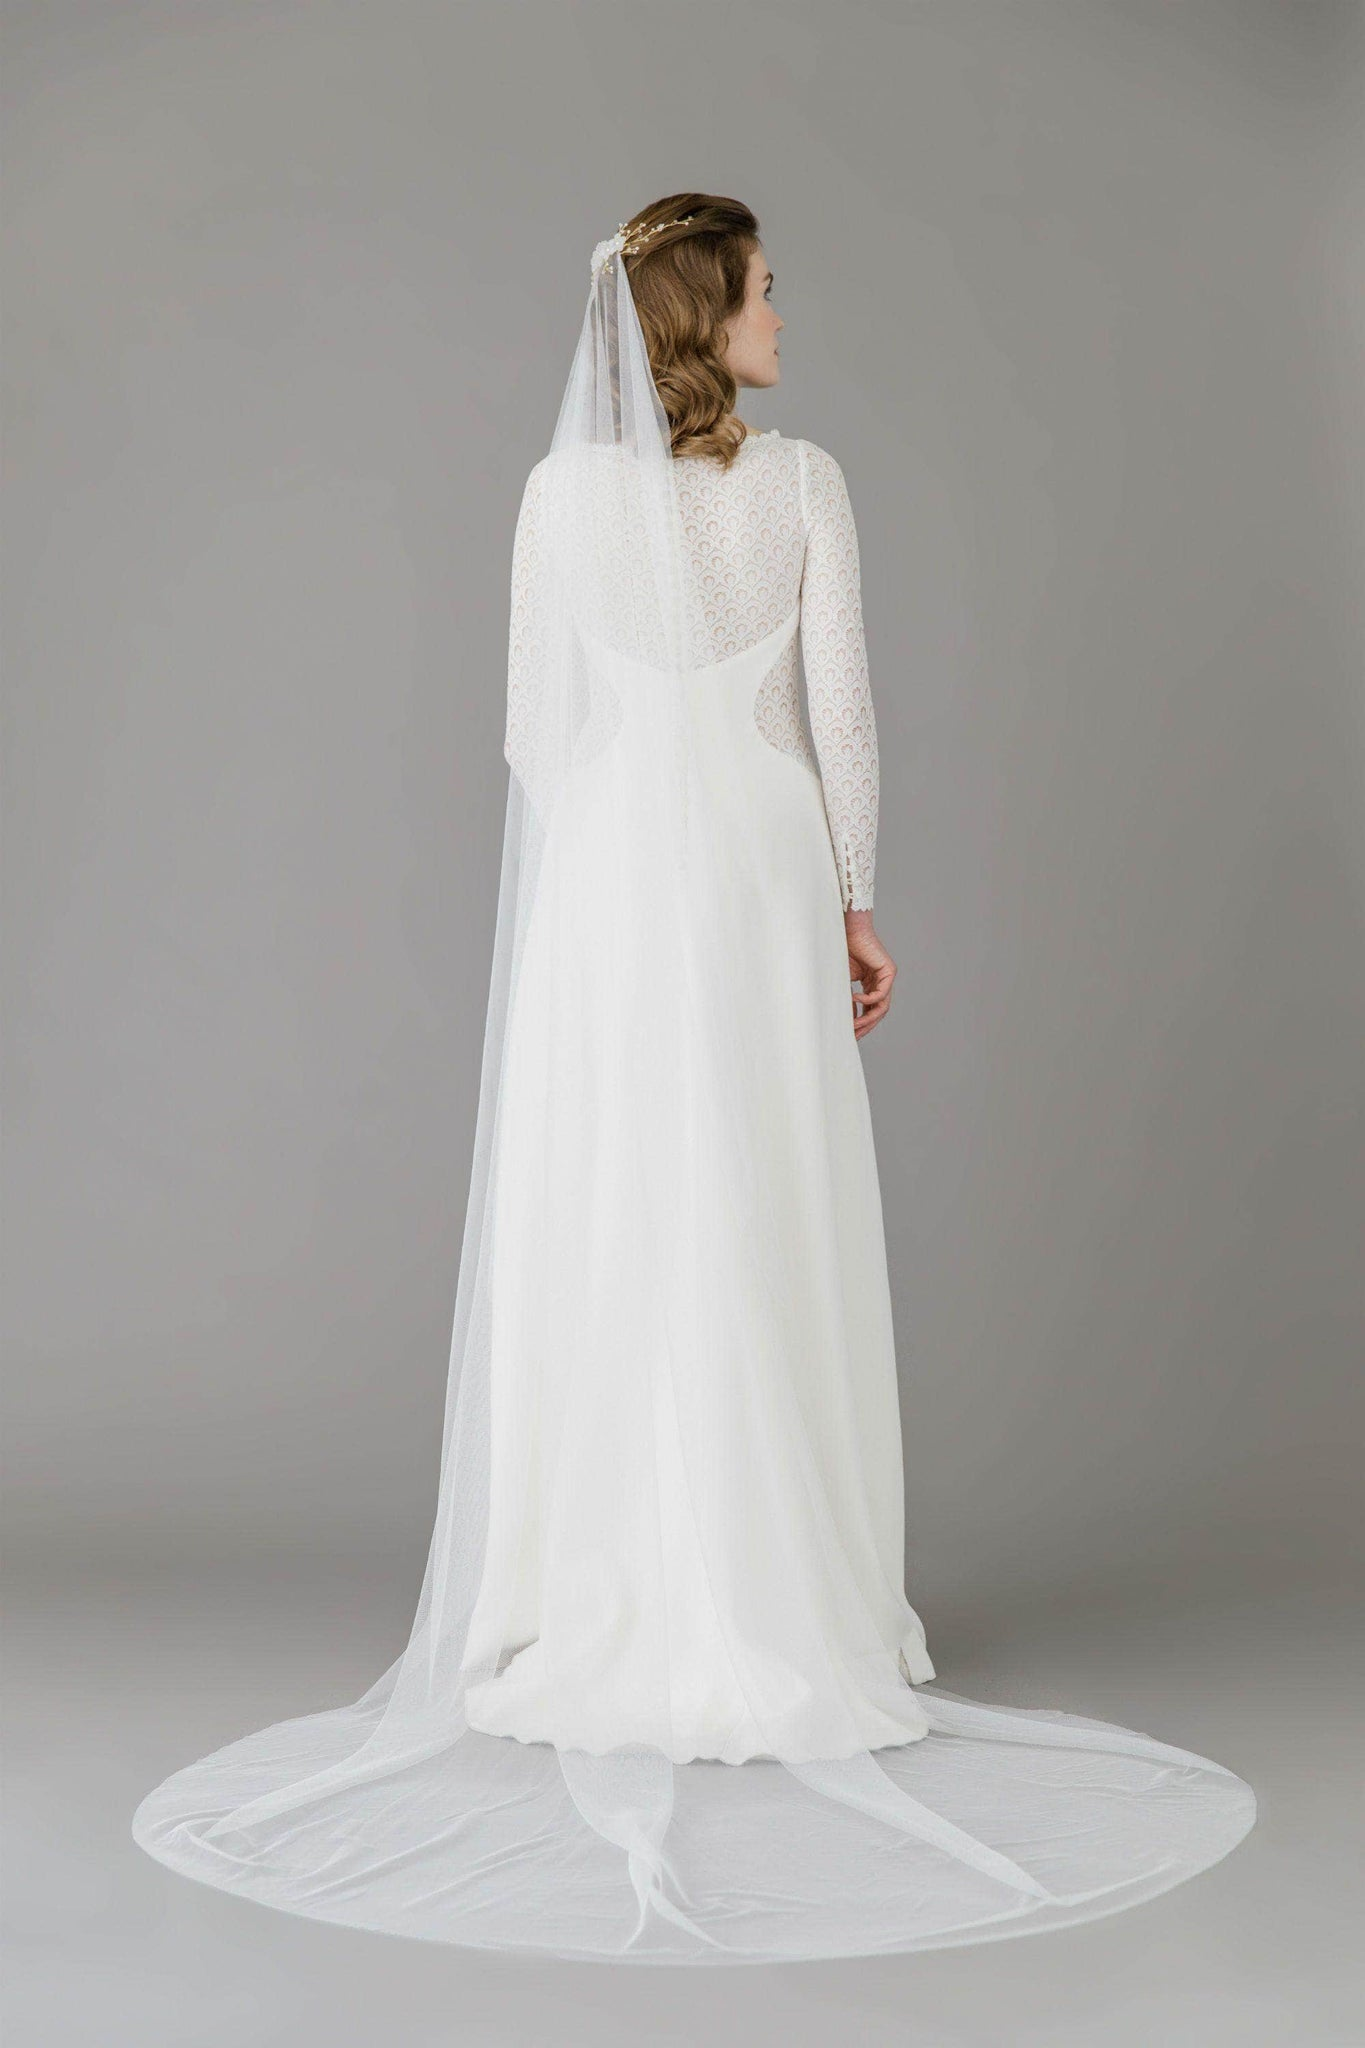 silk style barely there wedding veil